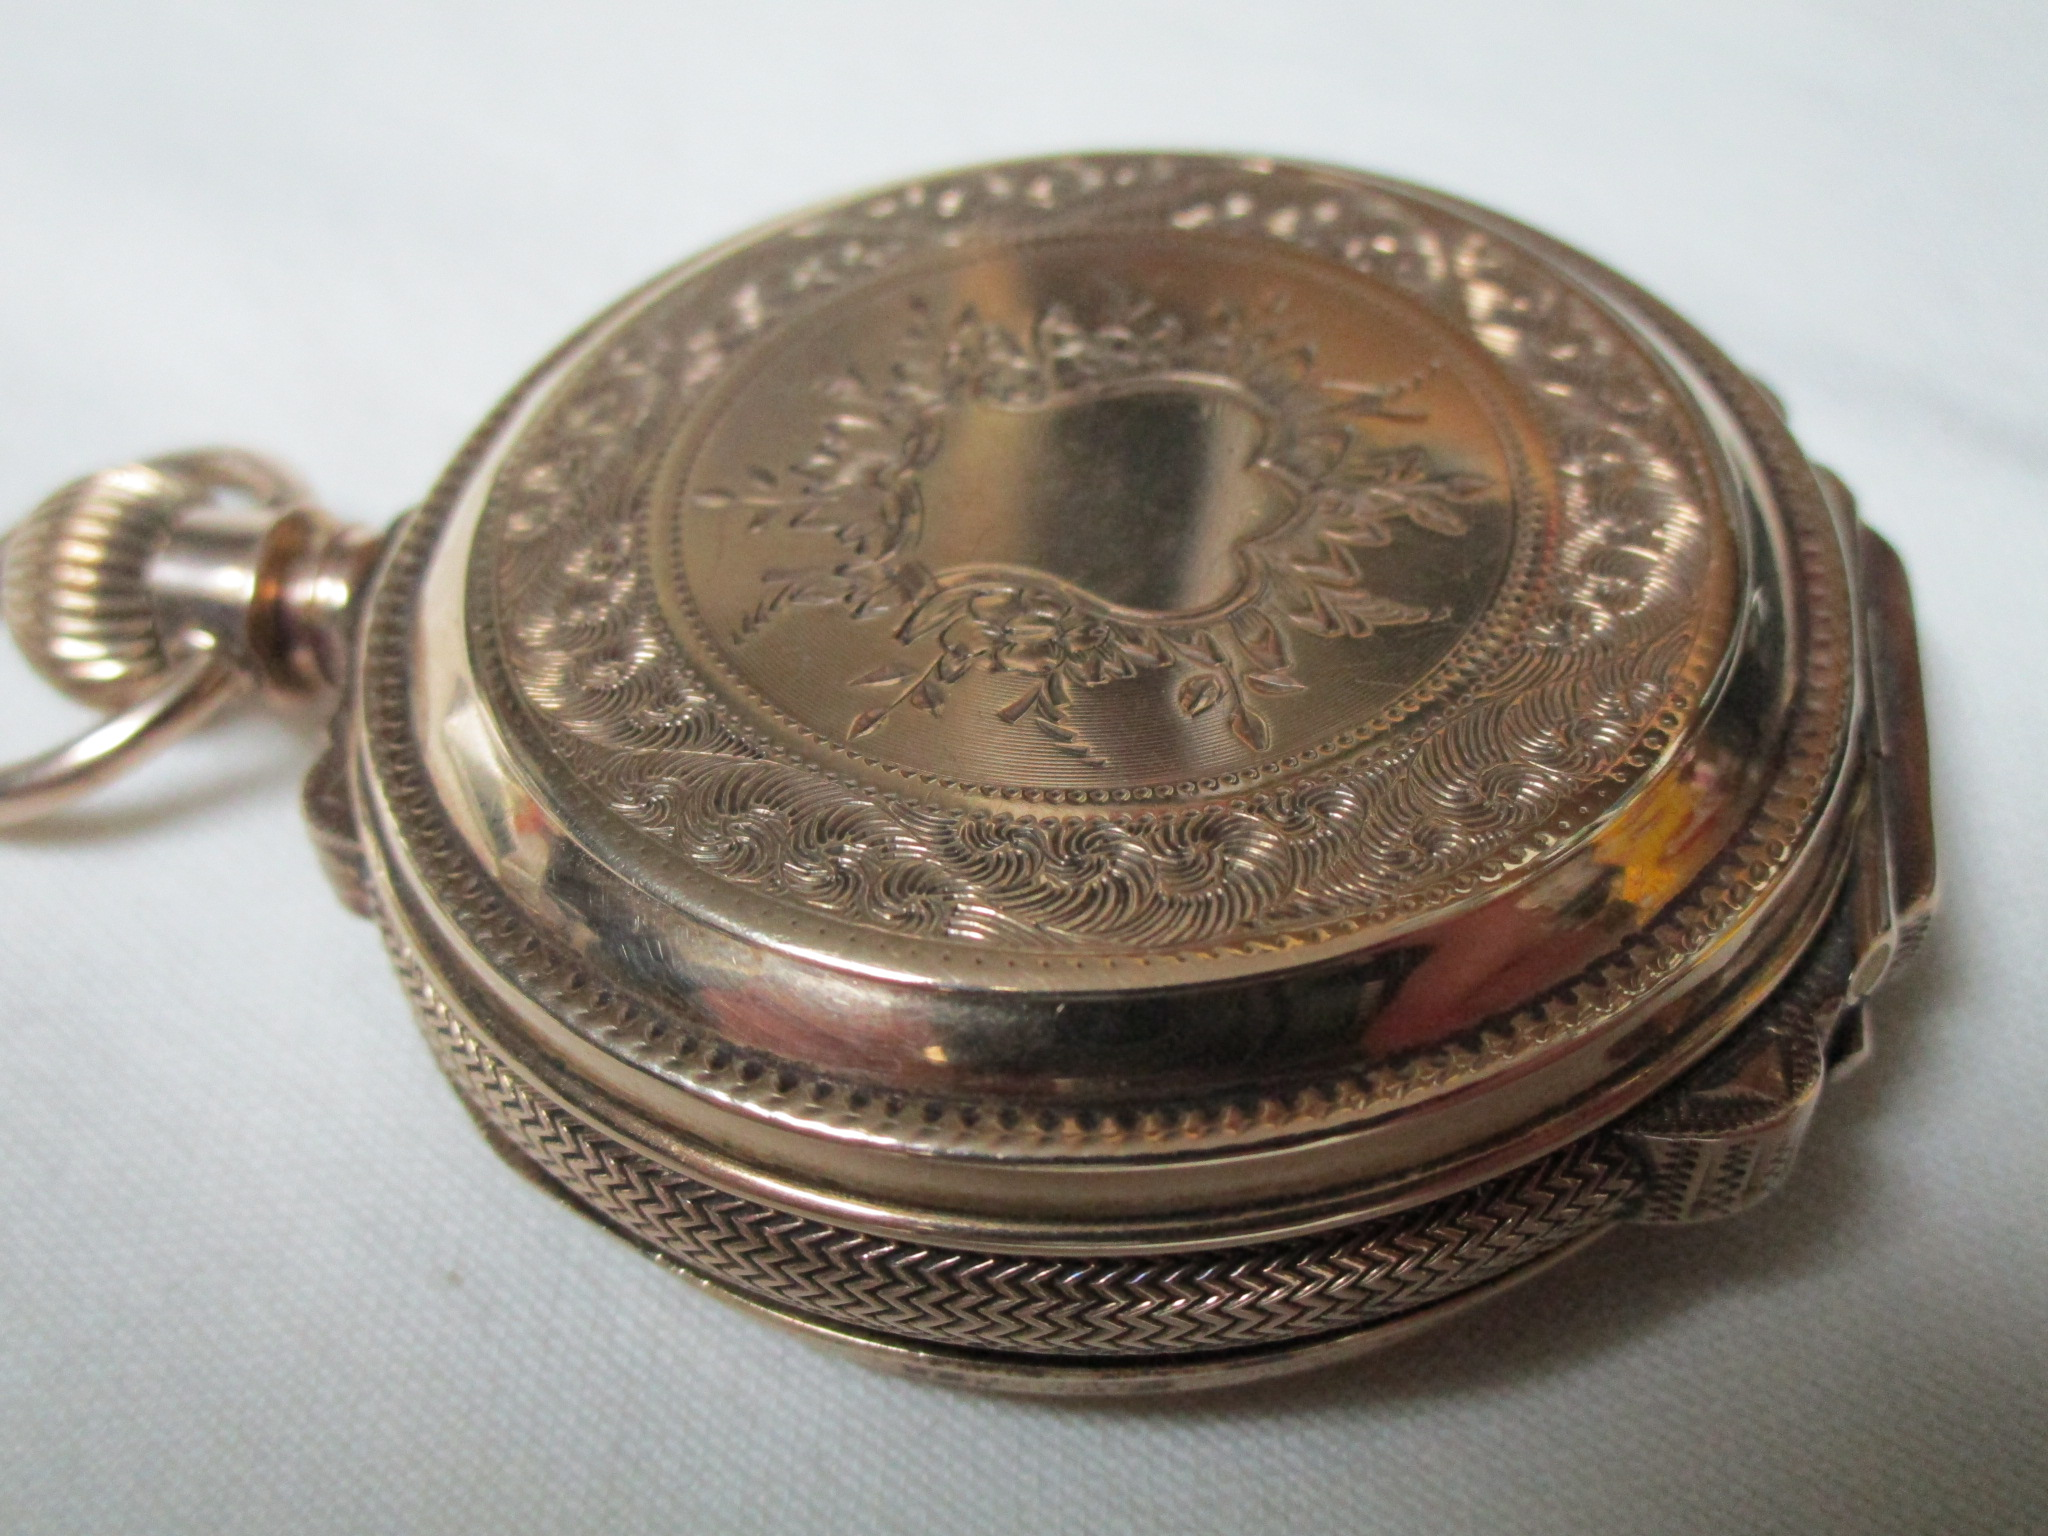 $xxx - Waltham P.S.B. -Brooklyn Eagle- Pocket Watch - Vintage 1877